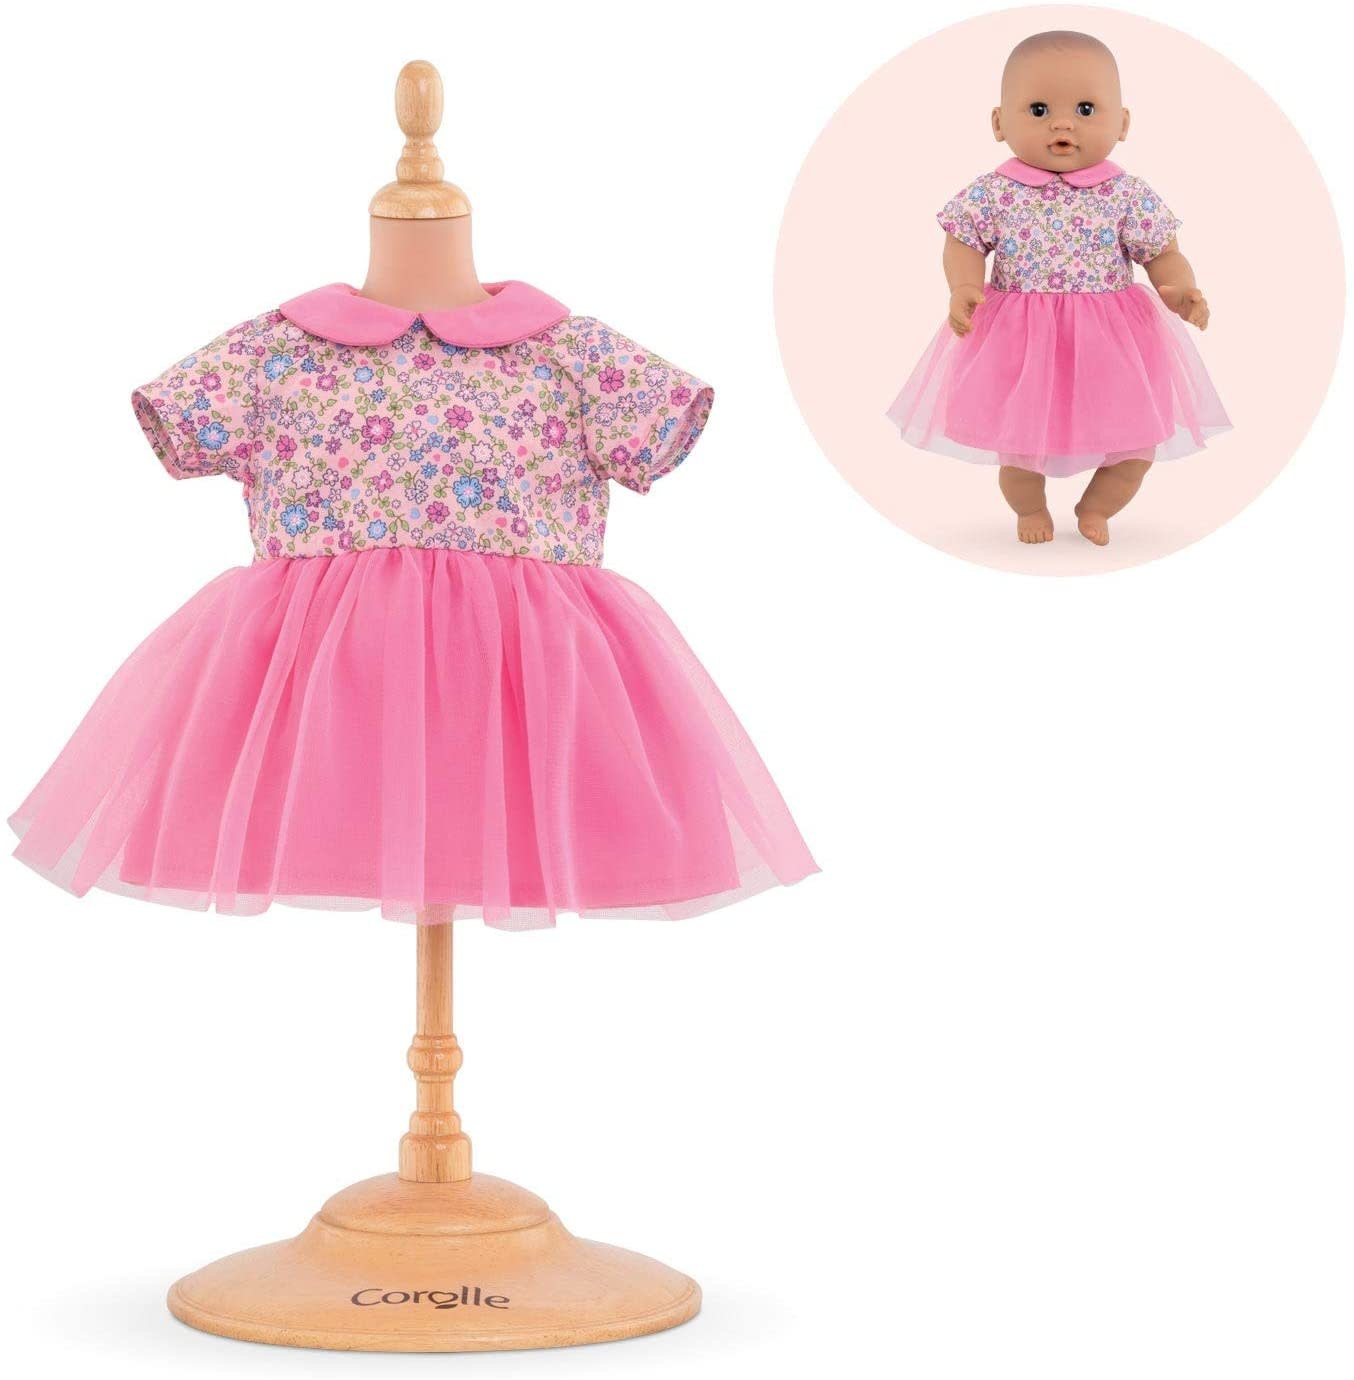 "Pink Sweet Dreams Dress for 12"" Dolls by Corolle"